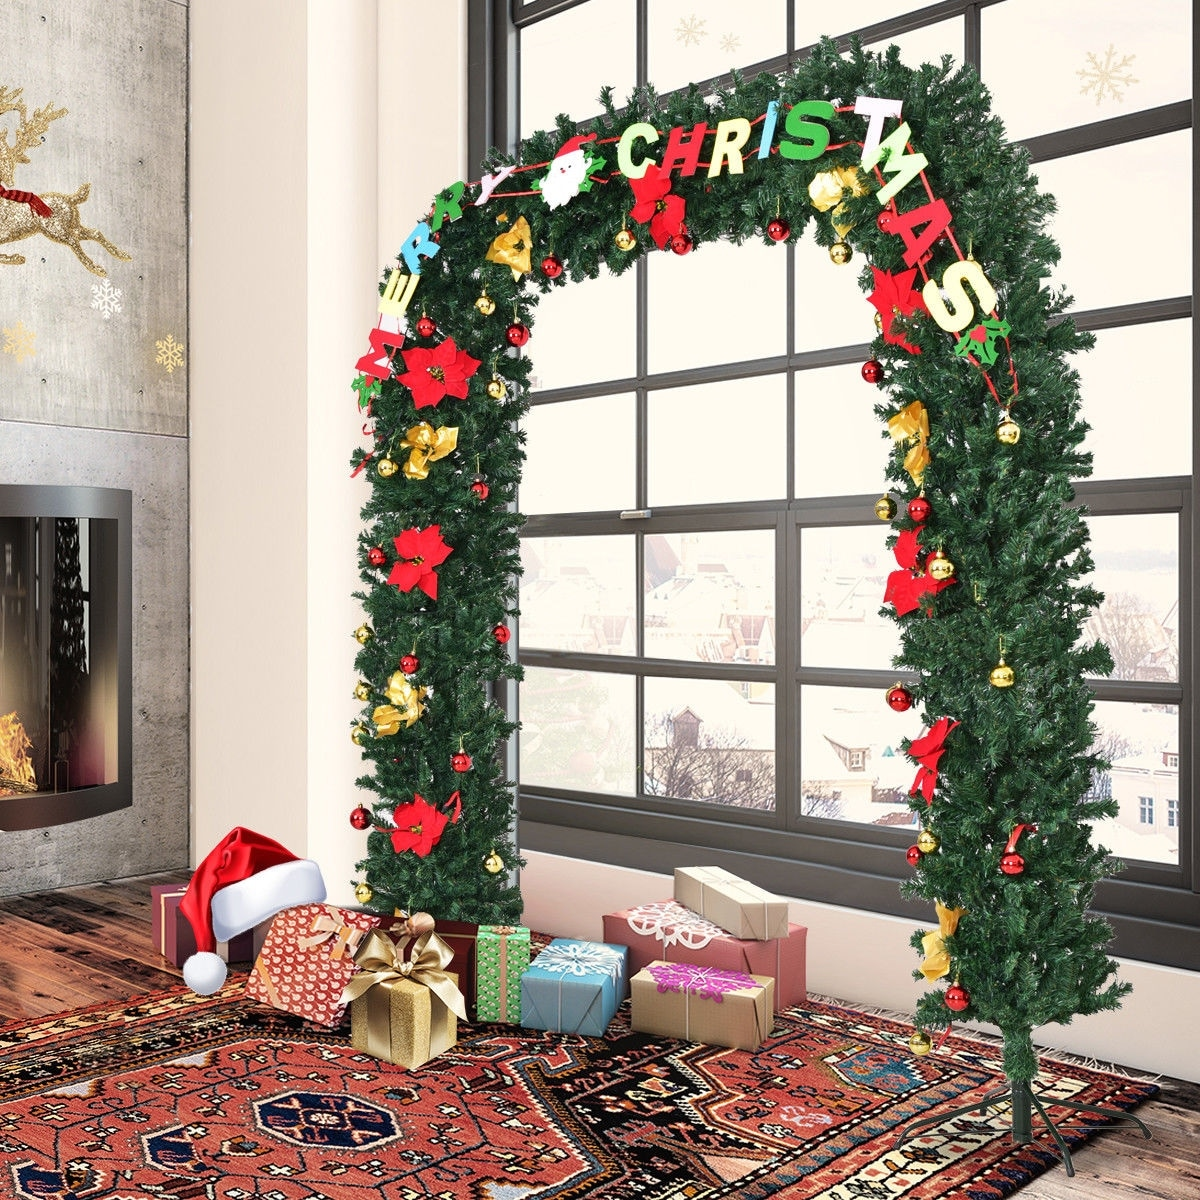 Shop Costway 7.5'X6.7' Pre-Lit Artificial Arched Christmas Tree Archway Decoration w/ Lights - Green - Ships To Canada - Overstock - 18513363